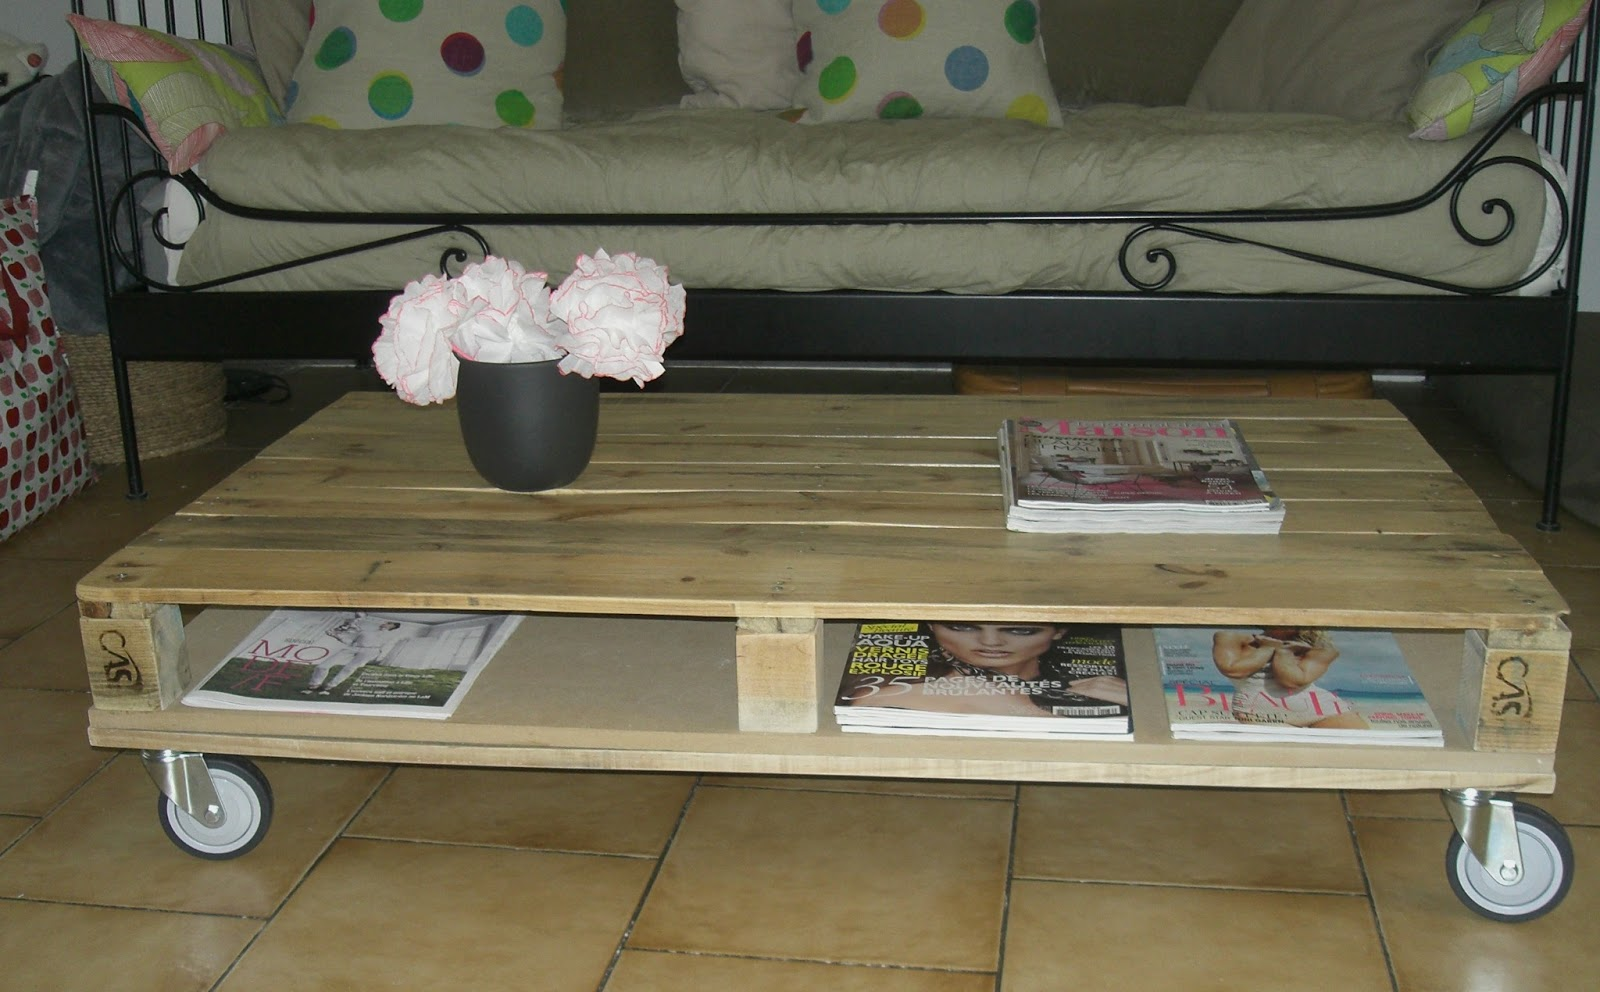 Gabulle in wonderland transformer une palette en table basse - Fabriquer table basse avec palette ...